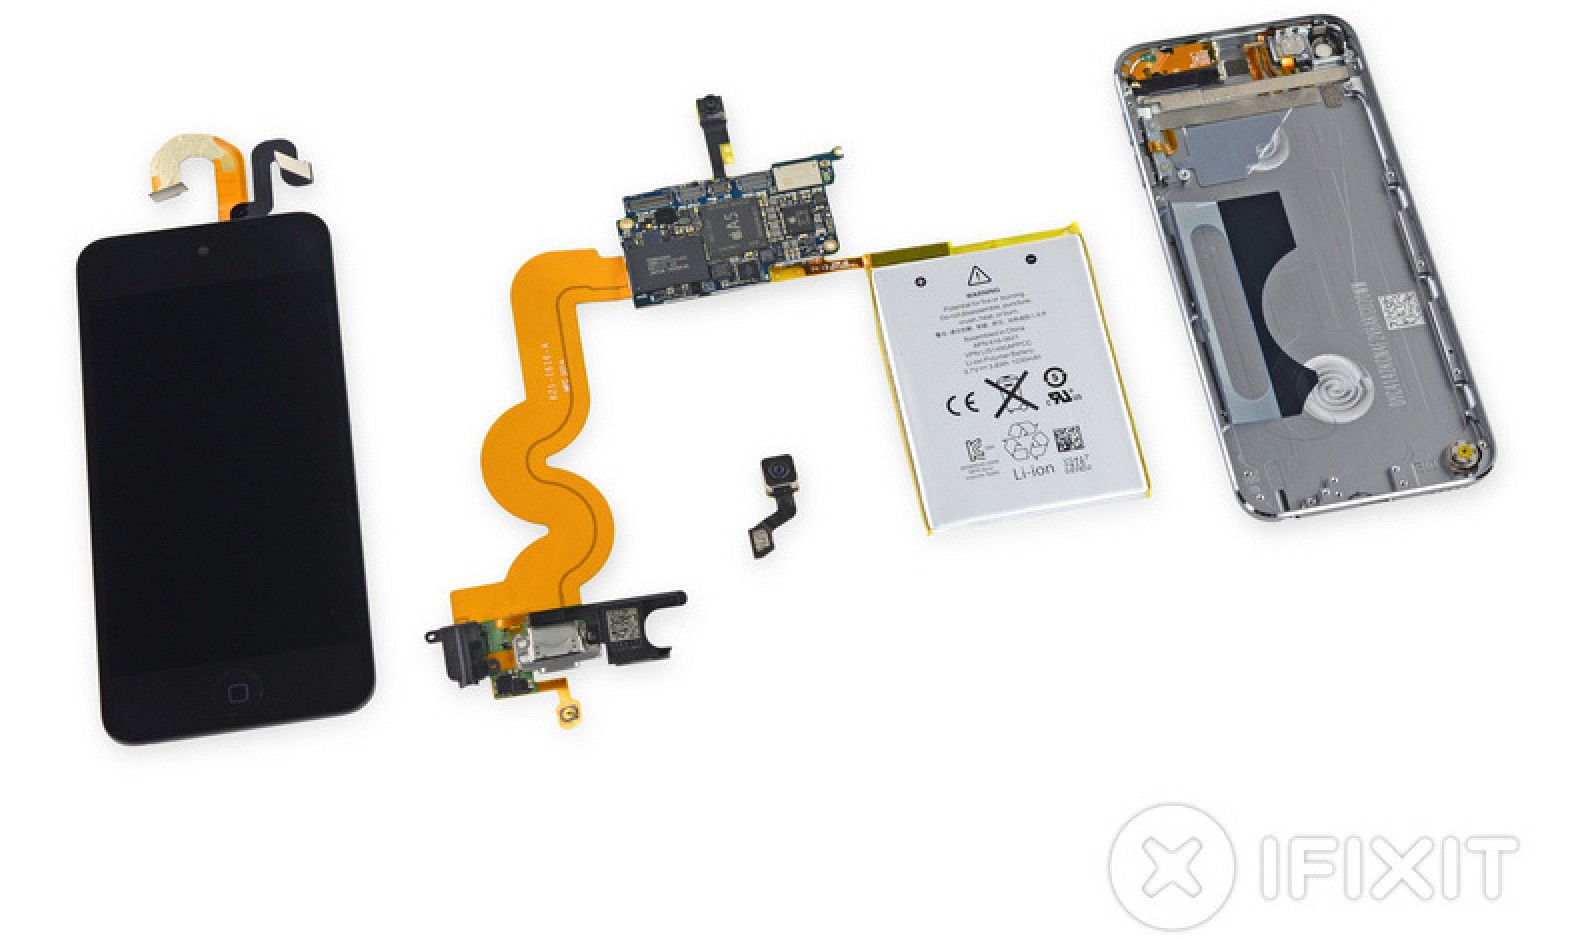 Teardown Of New 16 Gb Ipod Touch Reveals Same Internals And Layout Iphone 5 Logic Board Diagram As Larger Capacity Models Macrumors